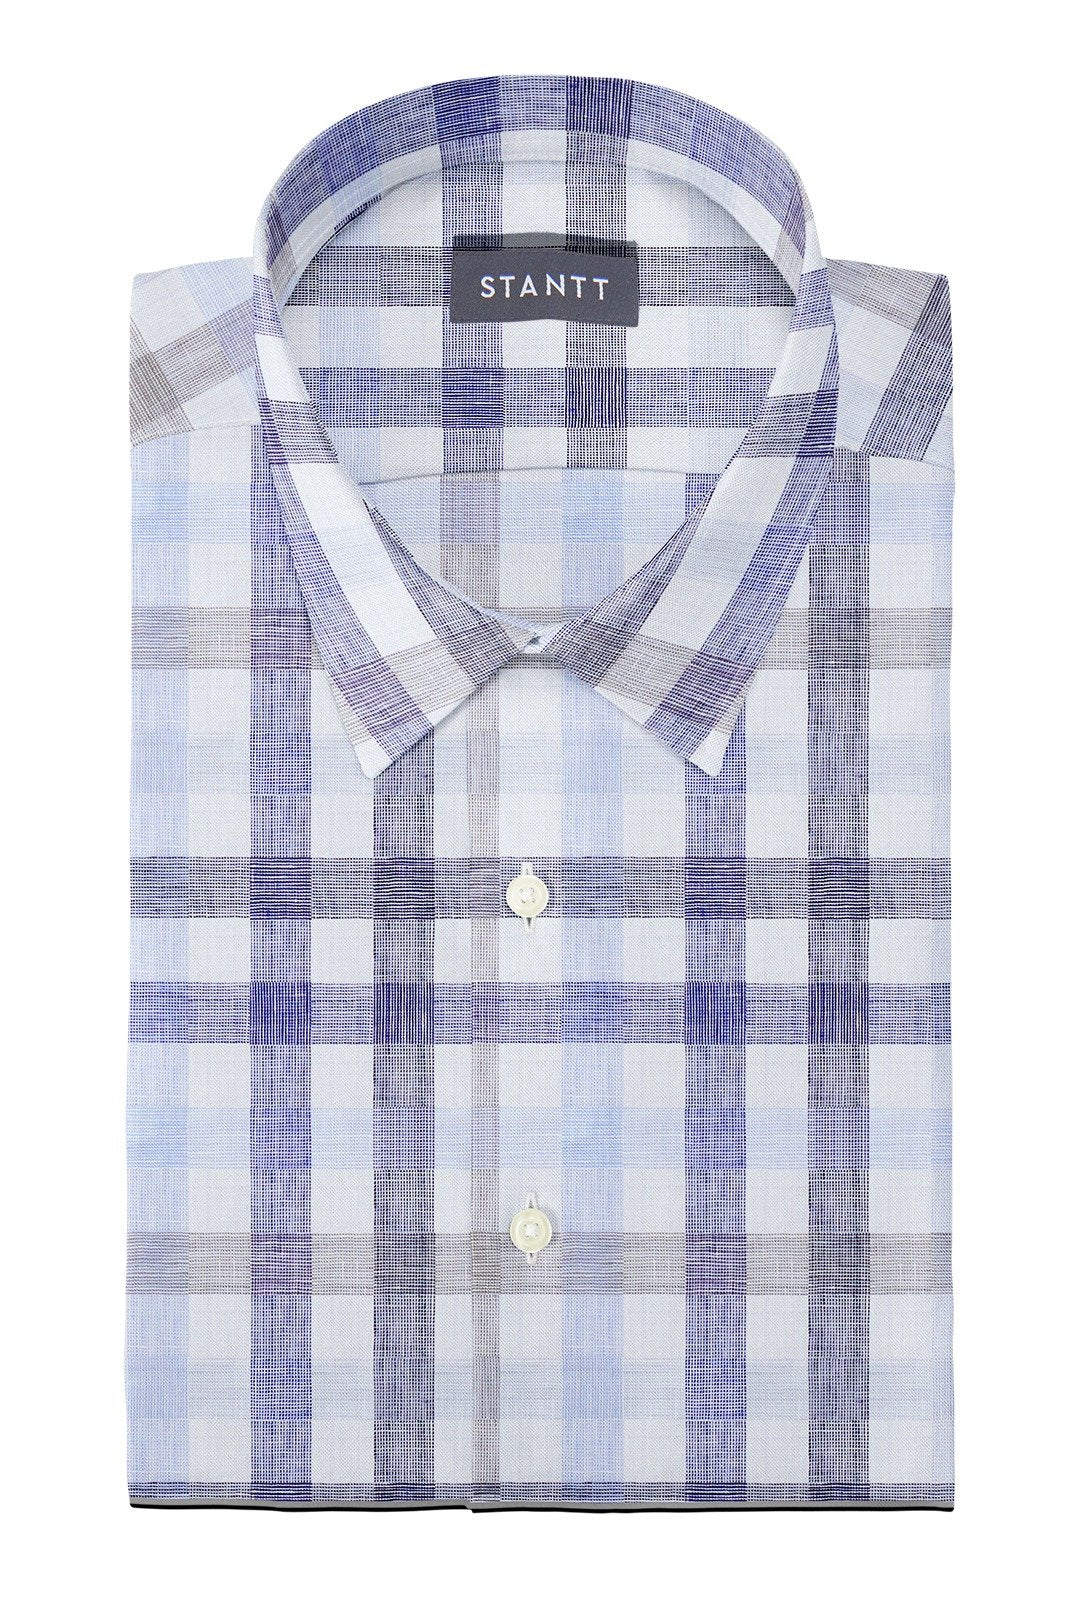 Blue and Beige Large Linen Check: Semi-Spread Collar, French Cuff